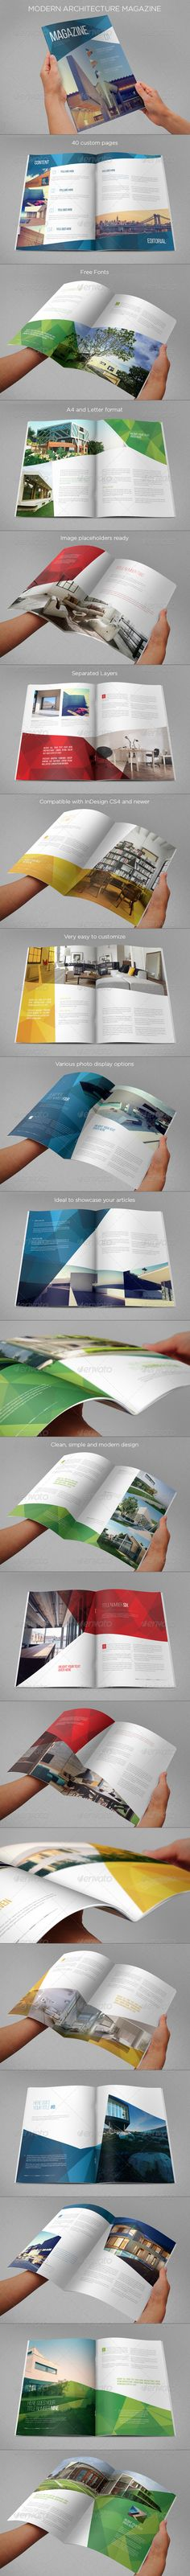 Original, modern and clean magazine design. It comes in A4 and Letter paper format. It contains 40 custom pages, which you can duplicate or reduce, and its modern design makes it easy to customize and adapt in InDesign.